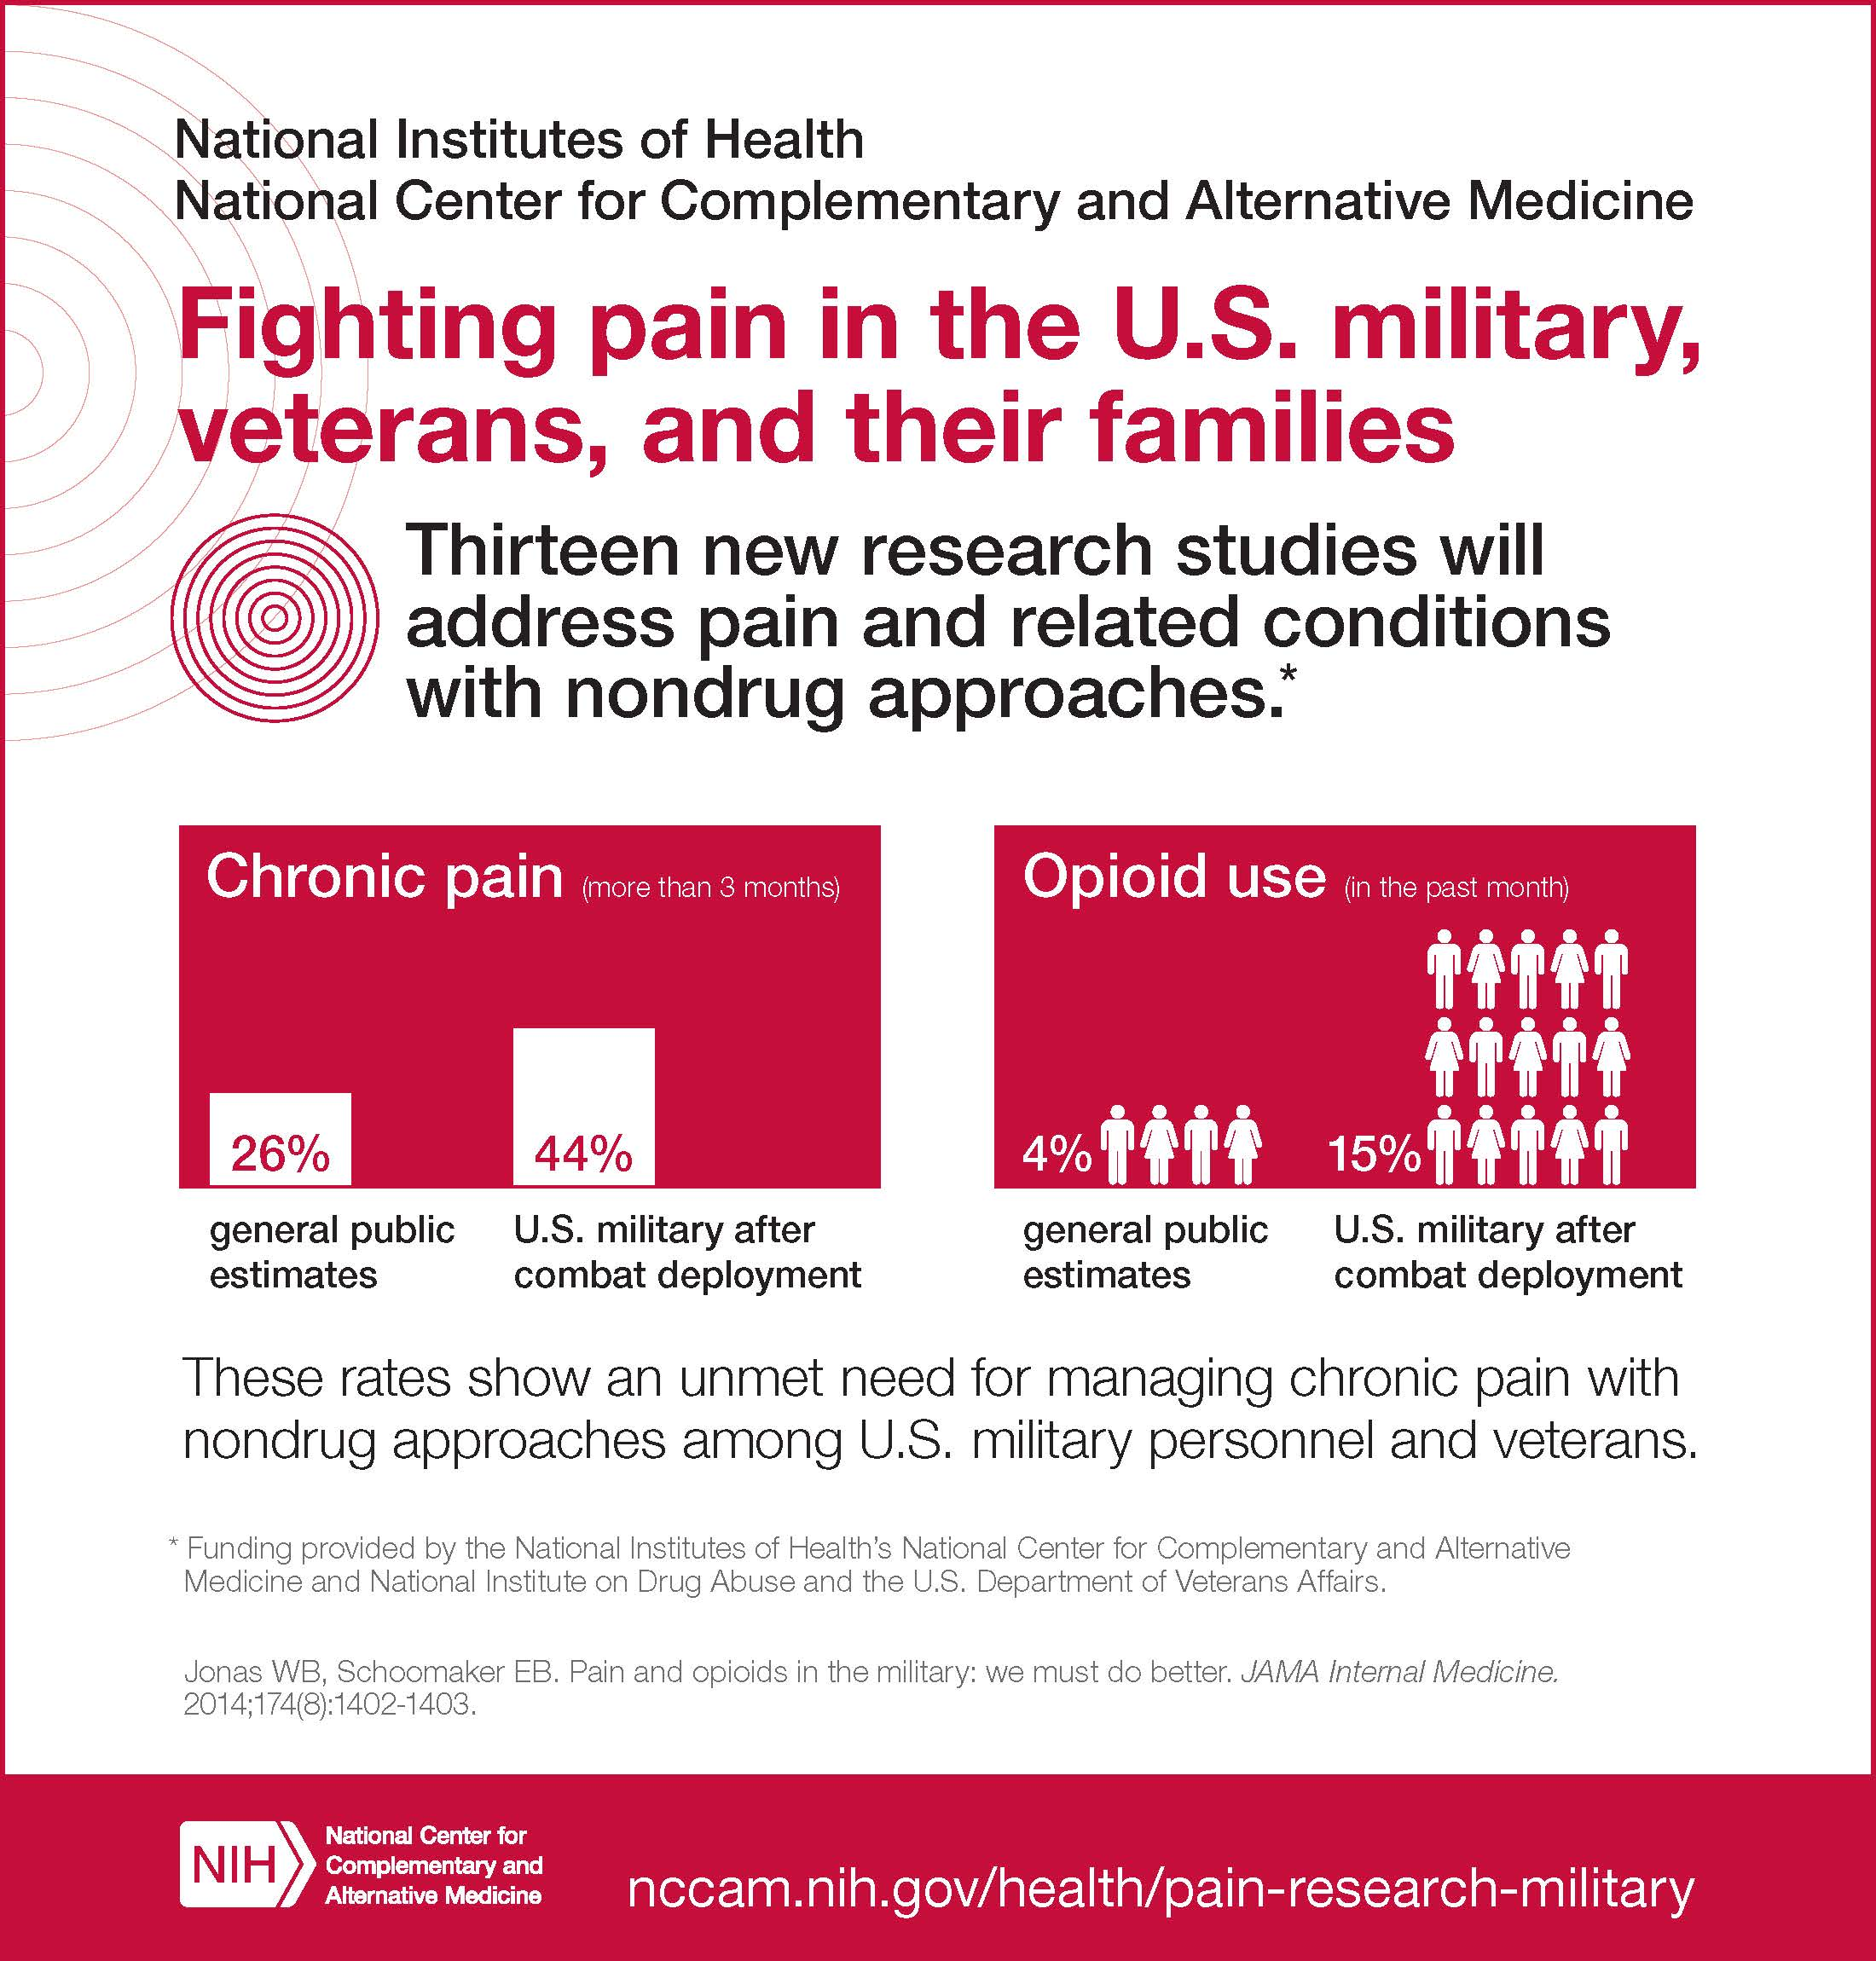 Forum on this topic: When Veterans Cope With Chronic Pain, when-veterans-cope-with-chronic-pain/